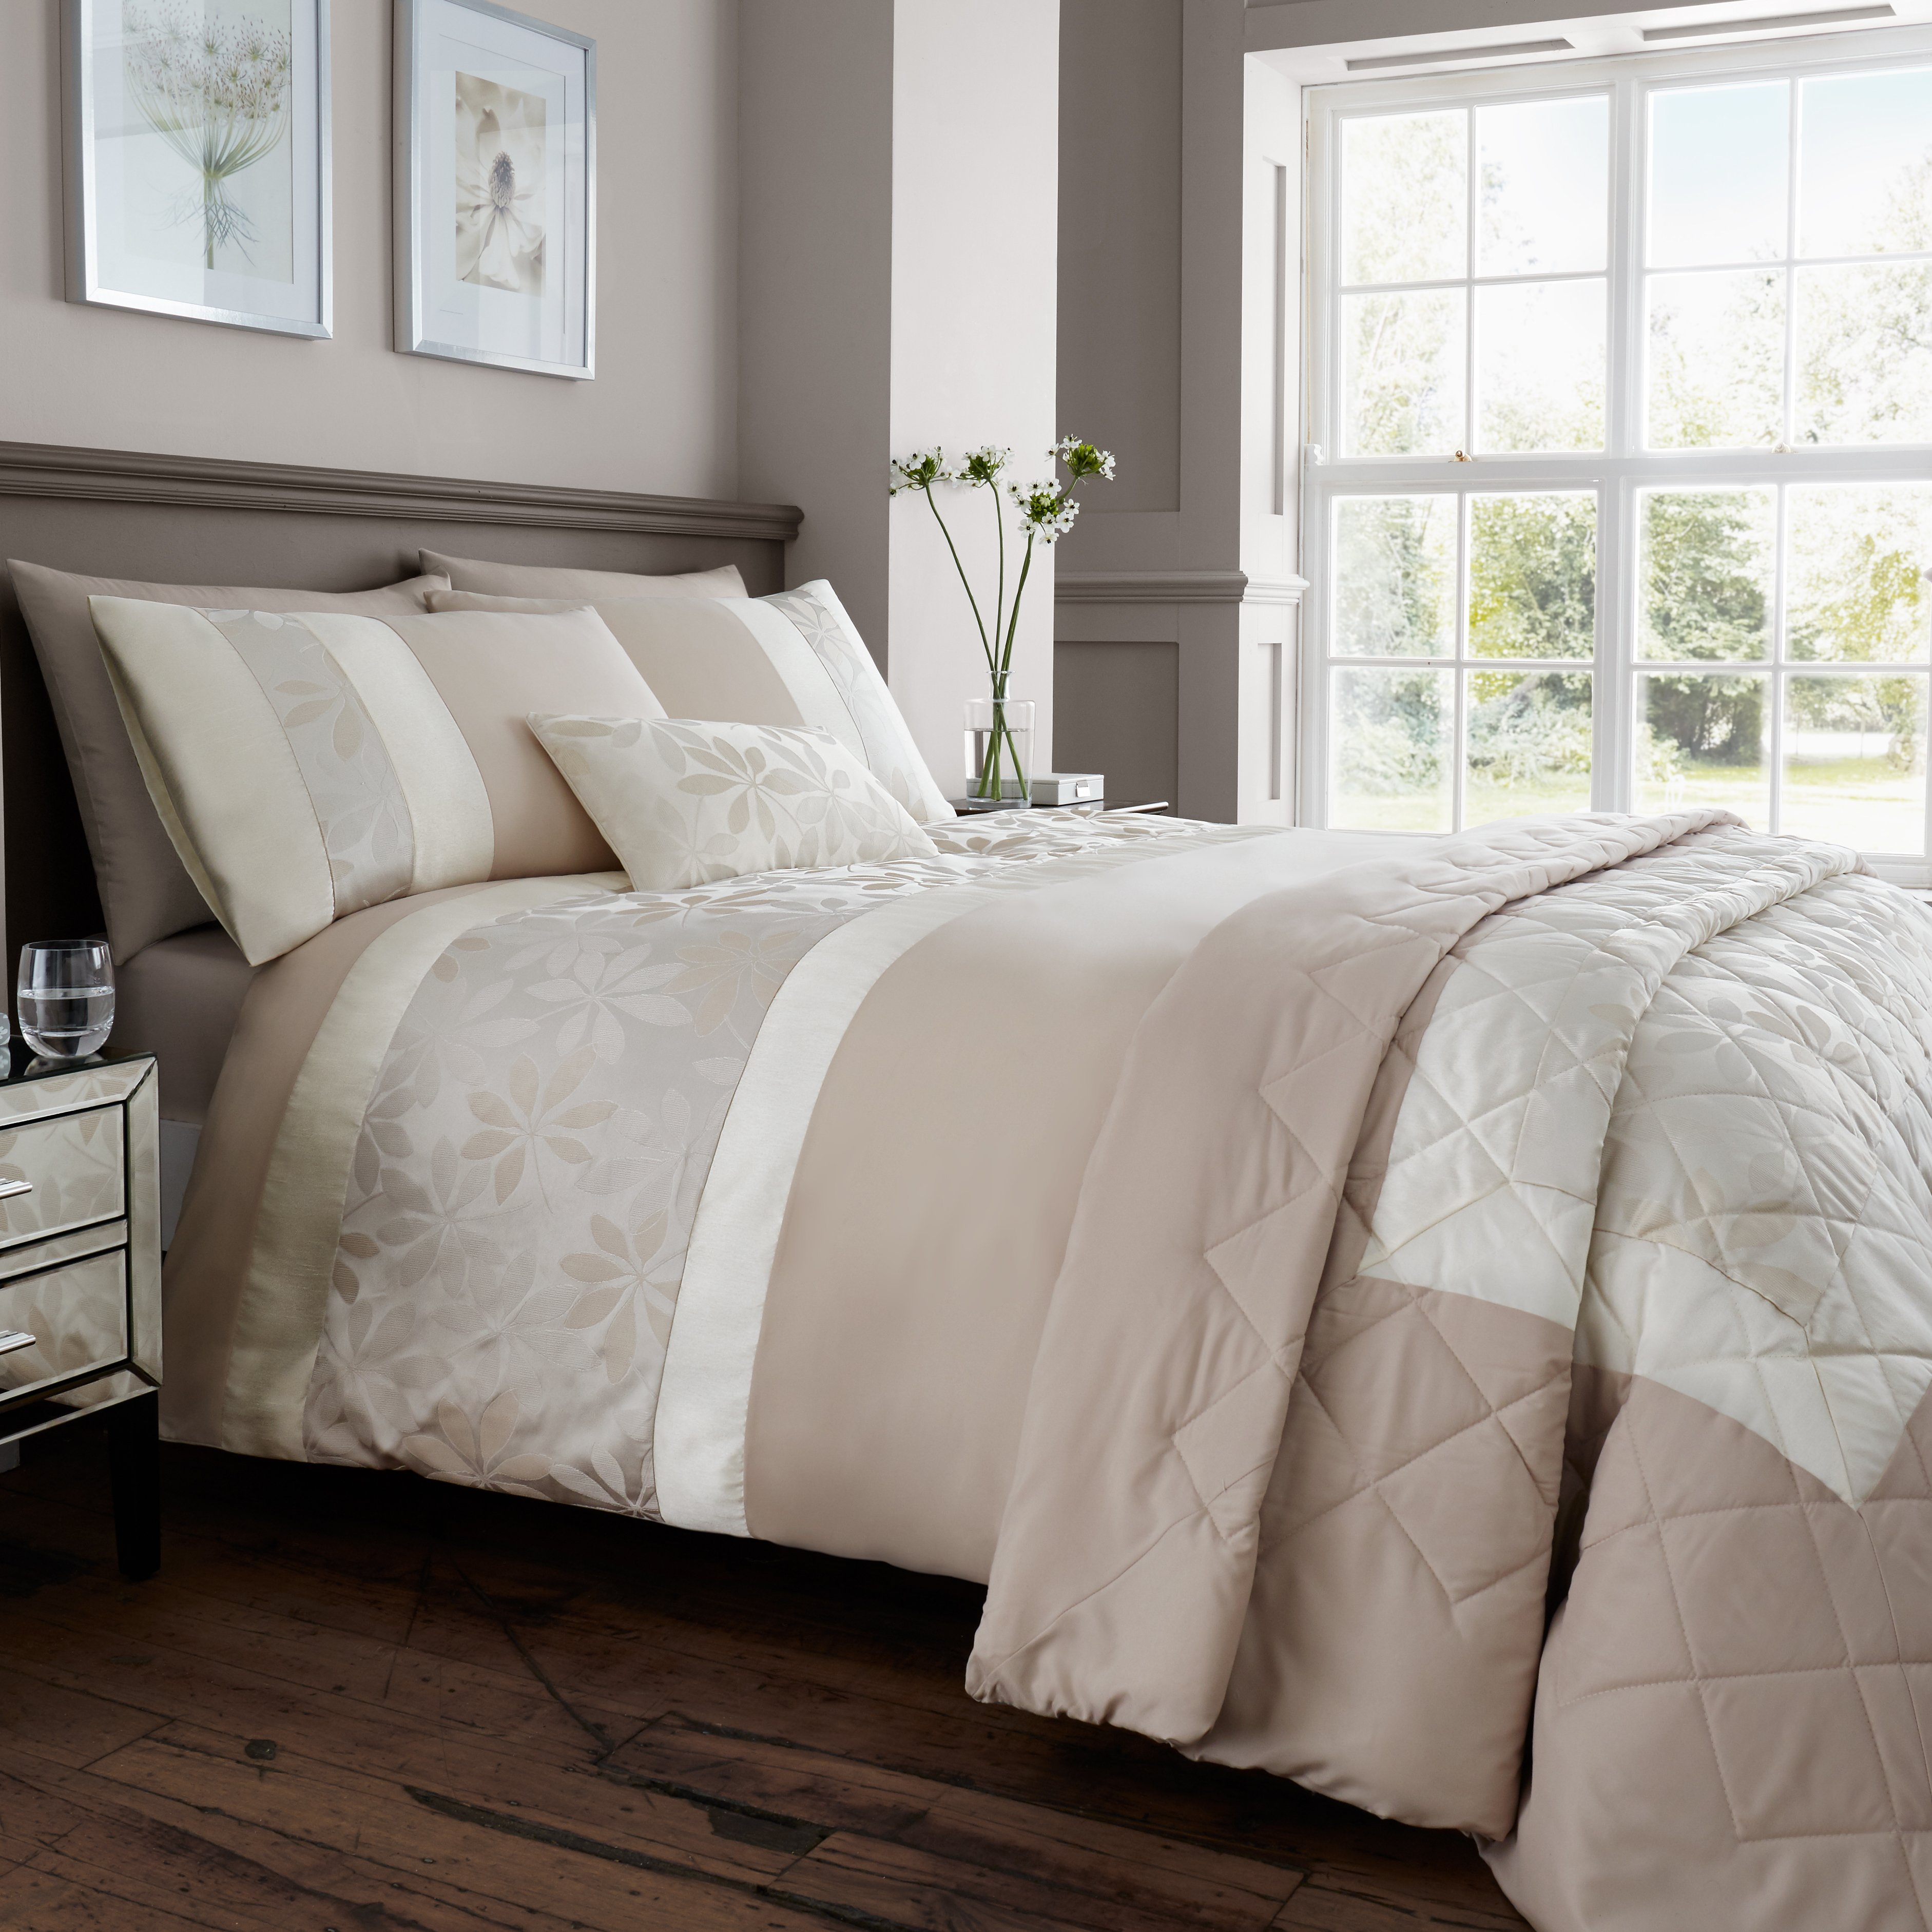 nuova ideas set cover mums idea republic ivory sculpted amazing home intended household piece designs king duvet brilliant great for